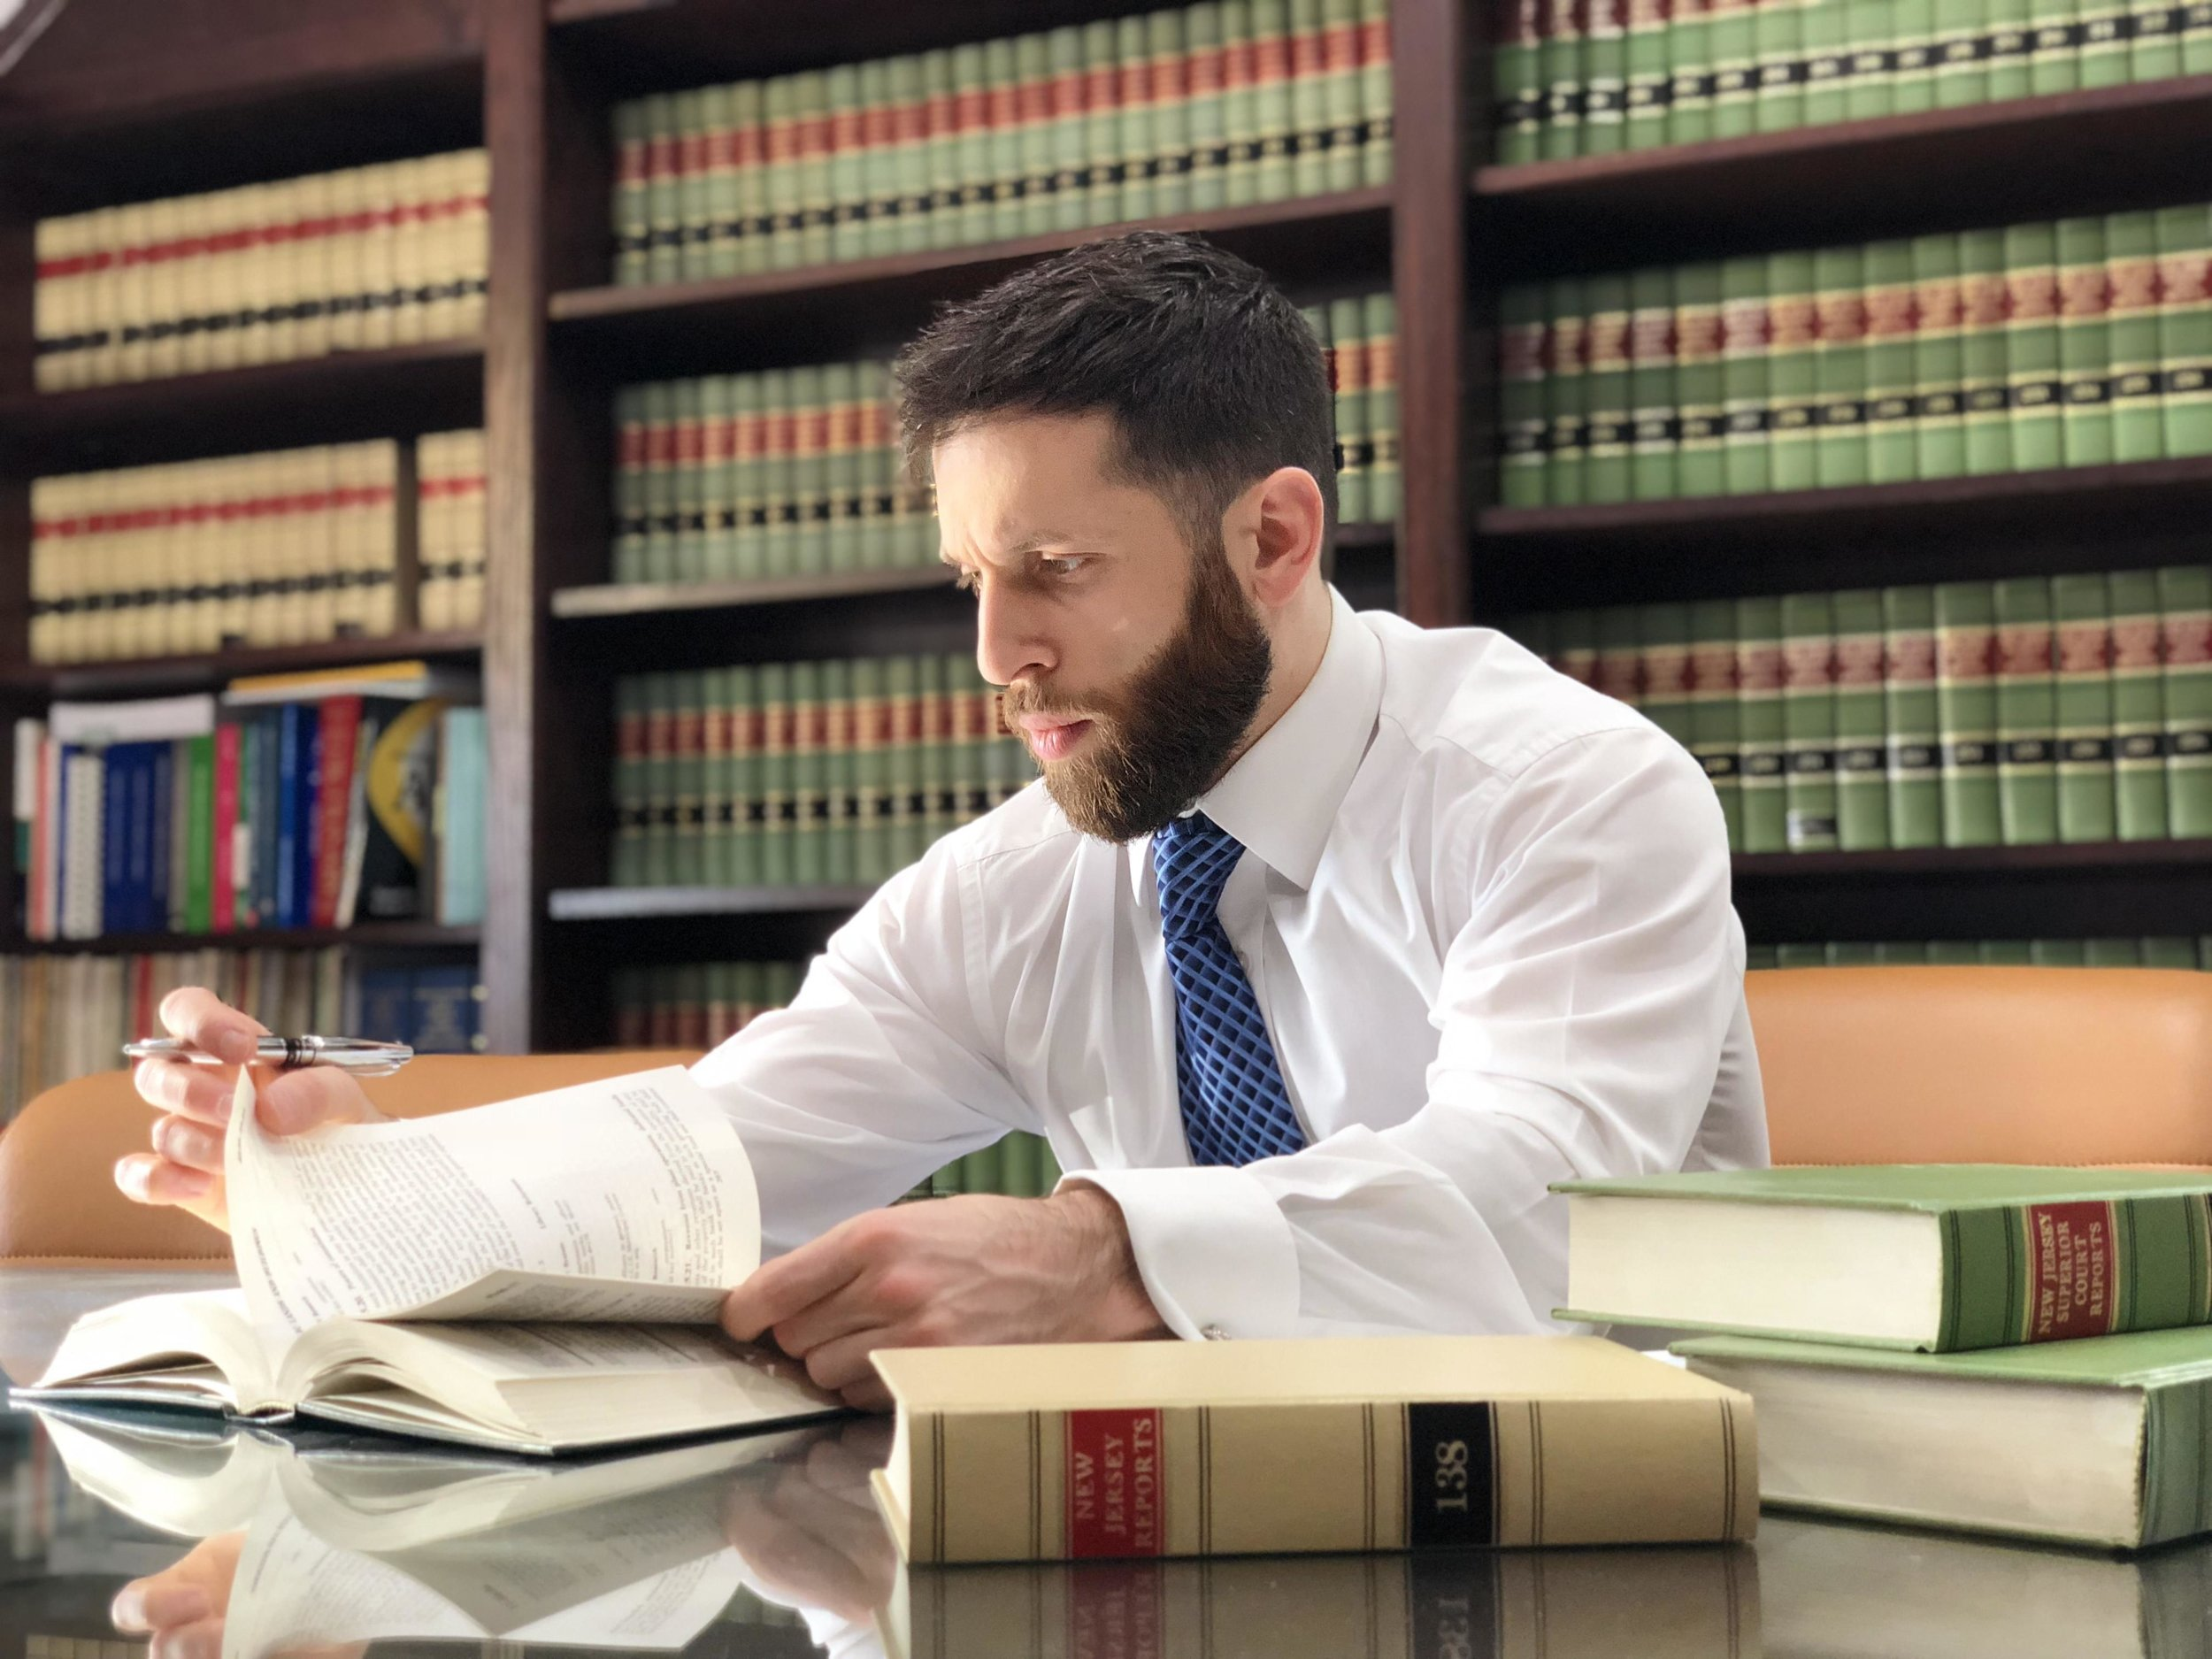 Anthony Bianco - Lawyer in New Jersey - Personal Injury attorney in bergen county nj.jpg